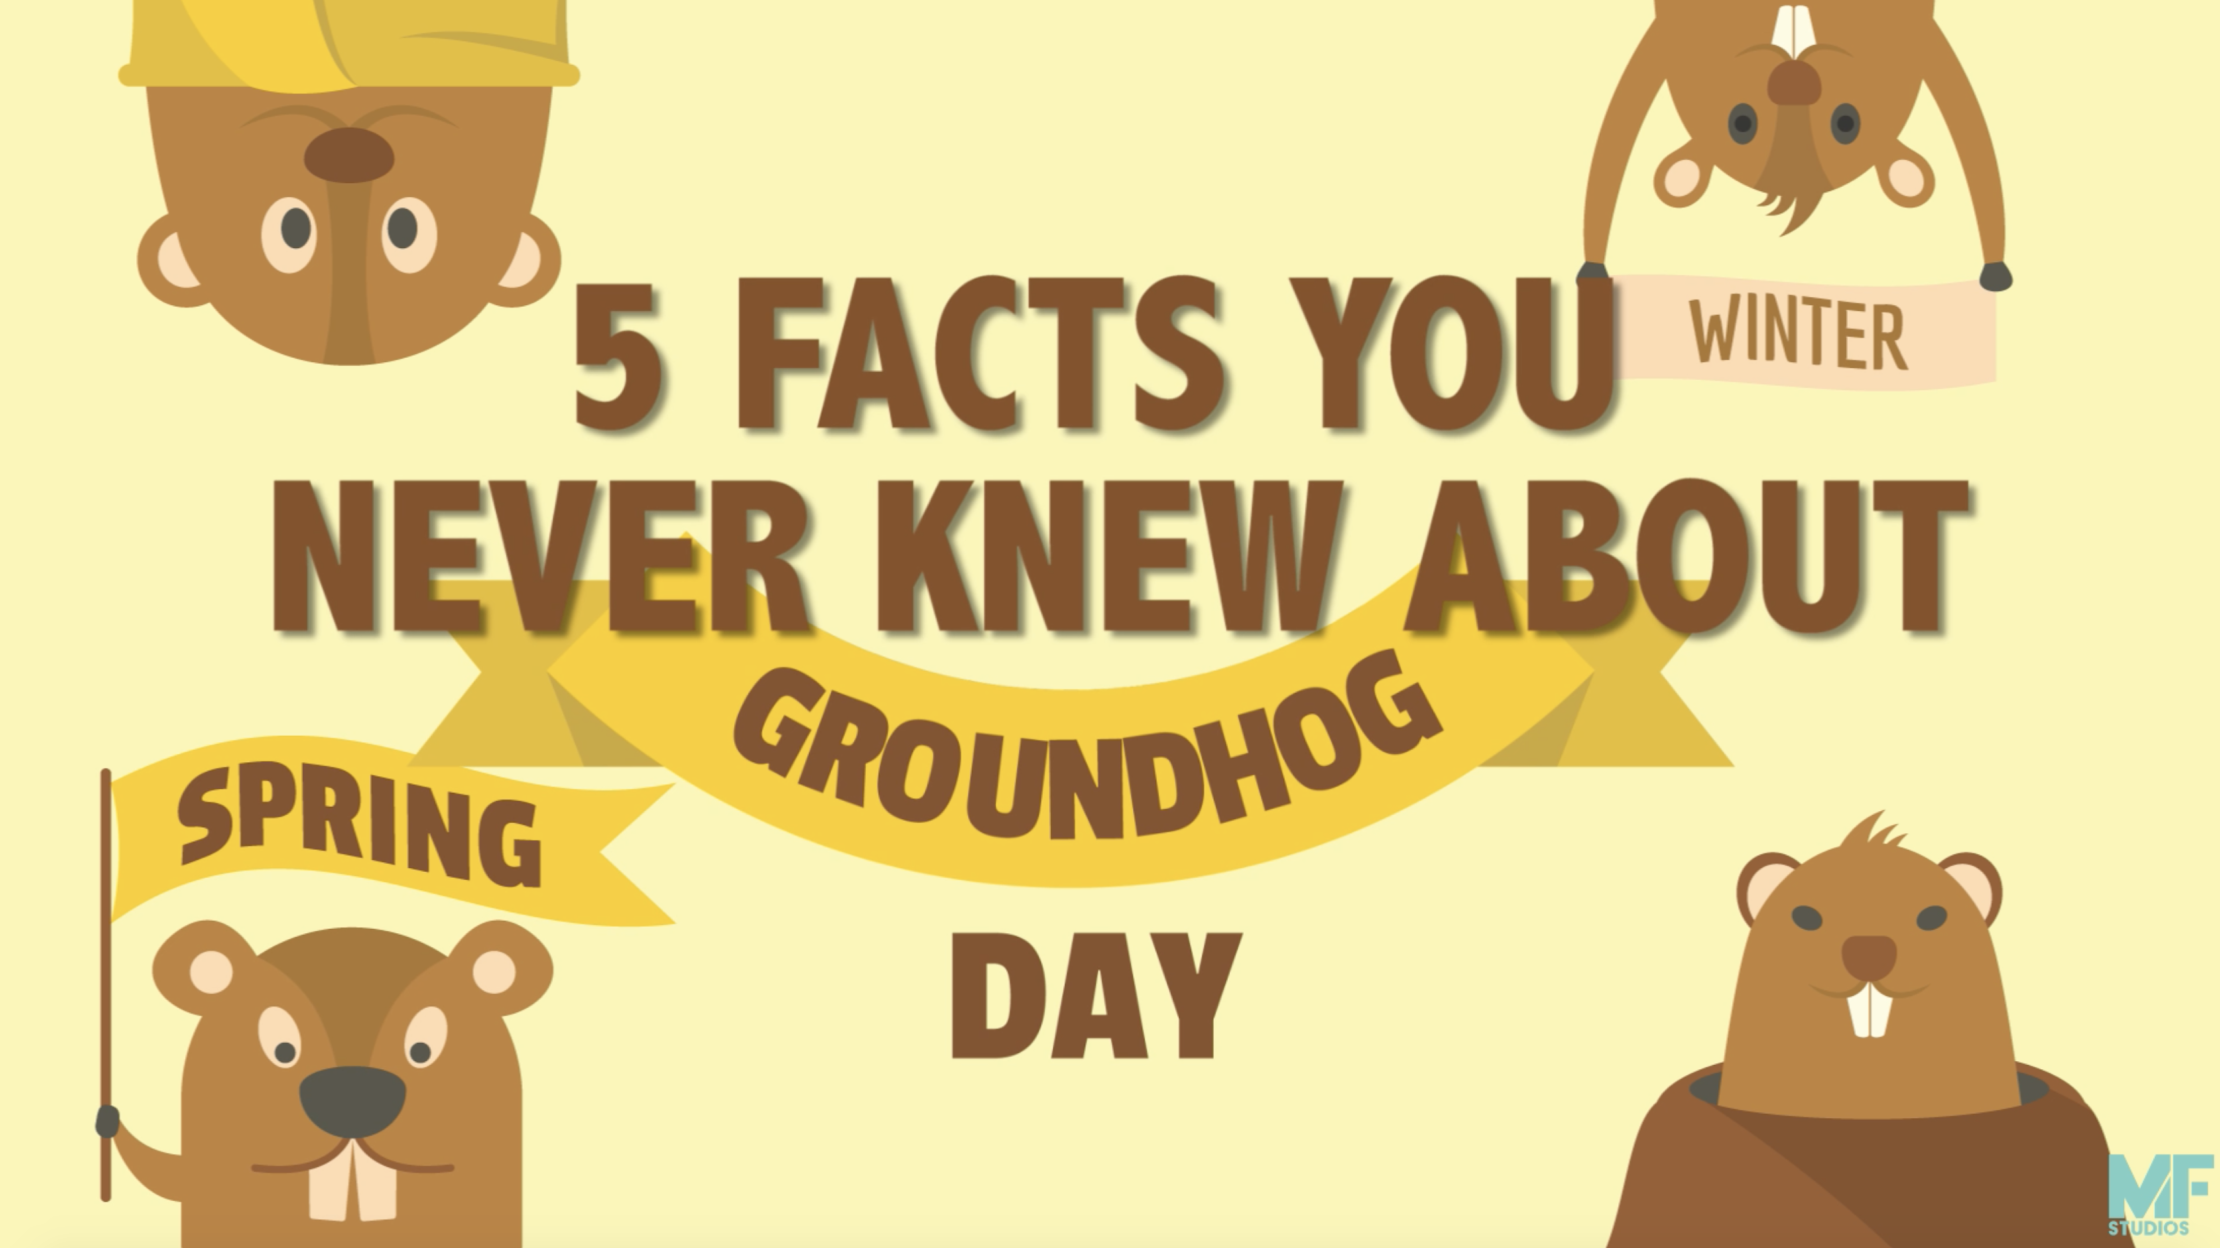 5 Facts You Never Knew About Groundhog Day